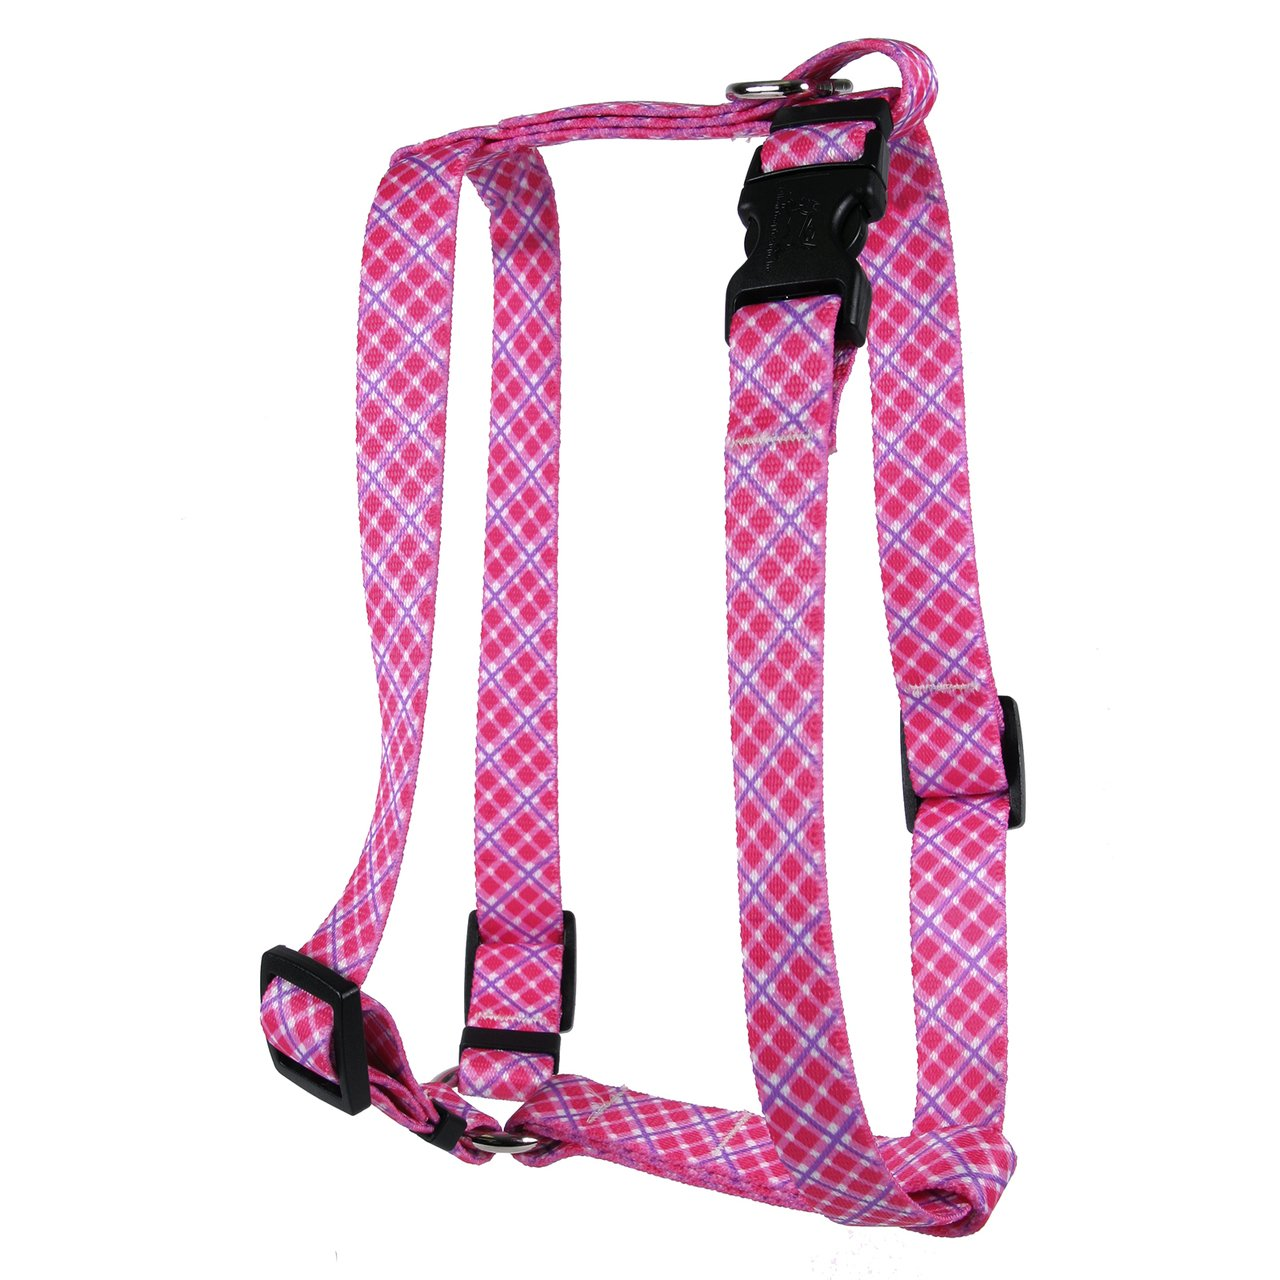 Yellow Dog Design Pink Purple Diagonal Plaid Roman H Harness, Small/Medium-3/4 Wide fits Chest of 14 to 20''